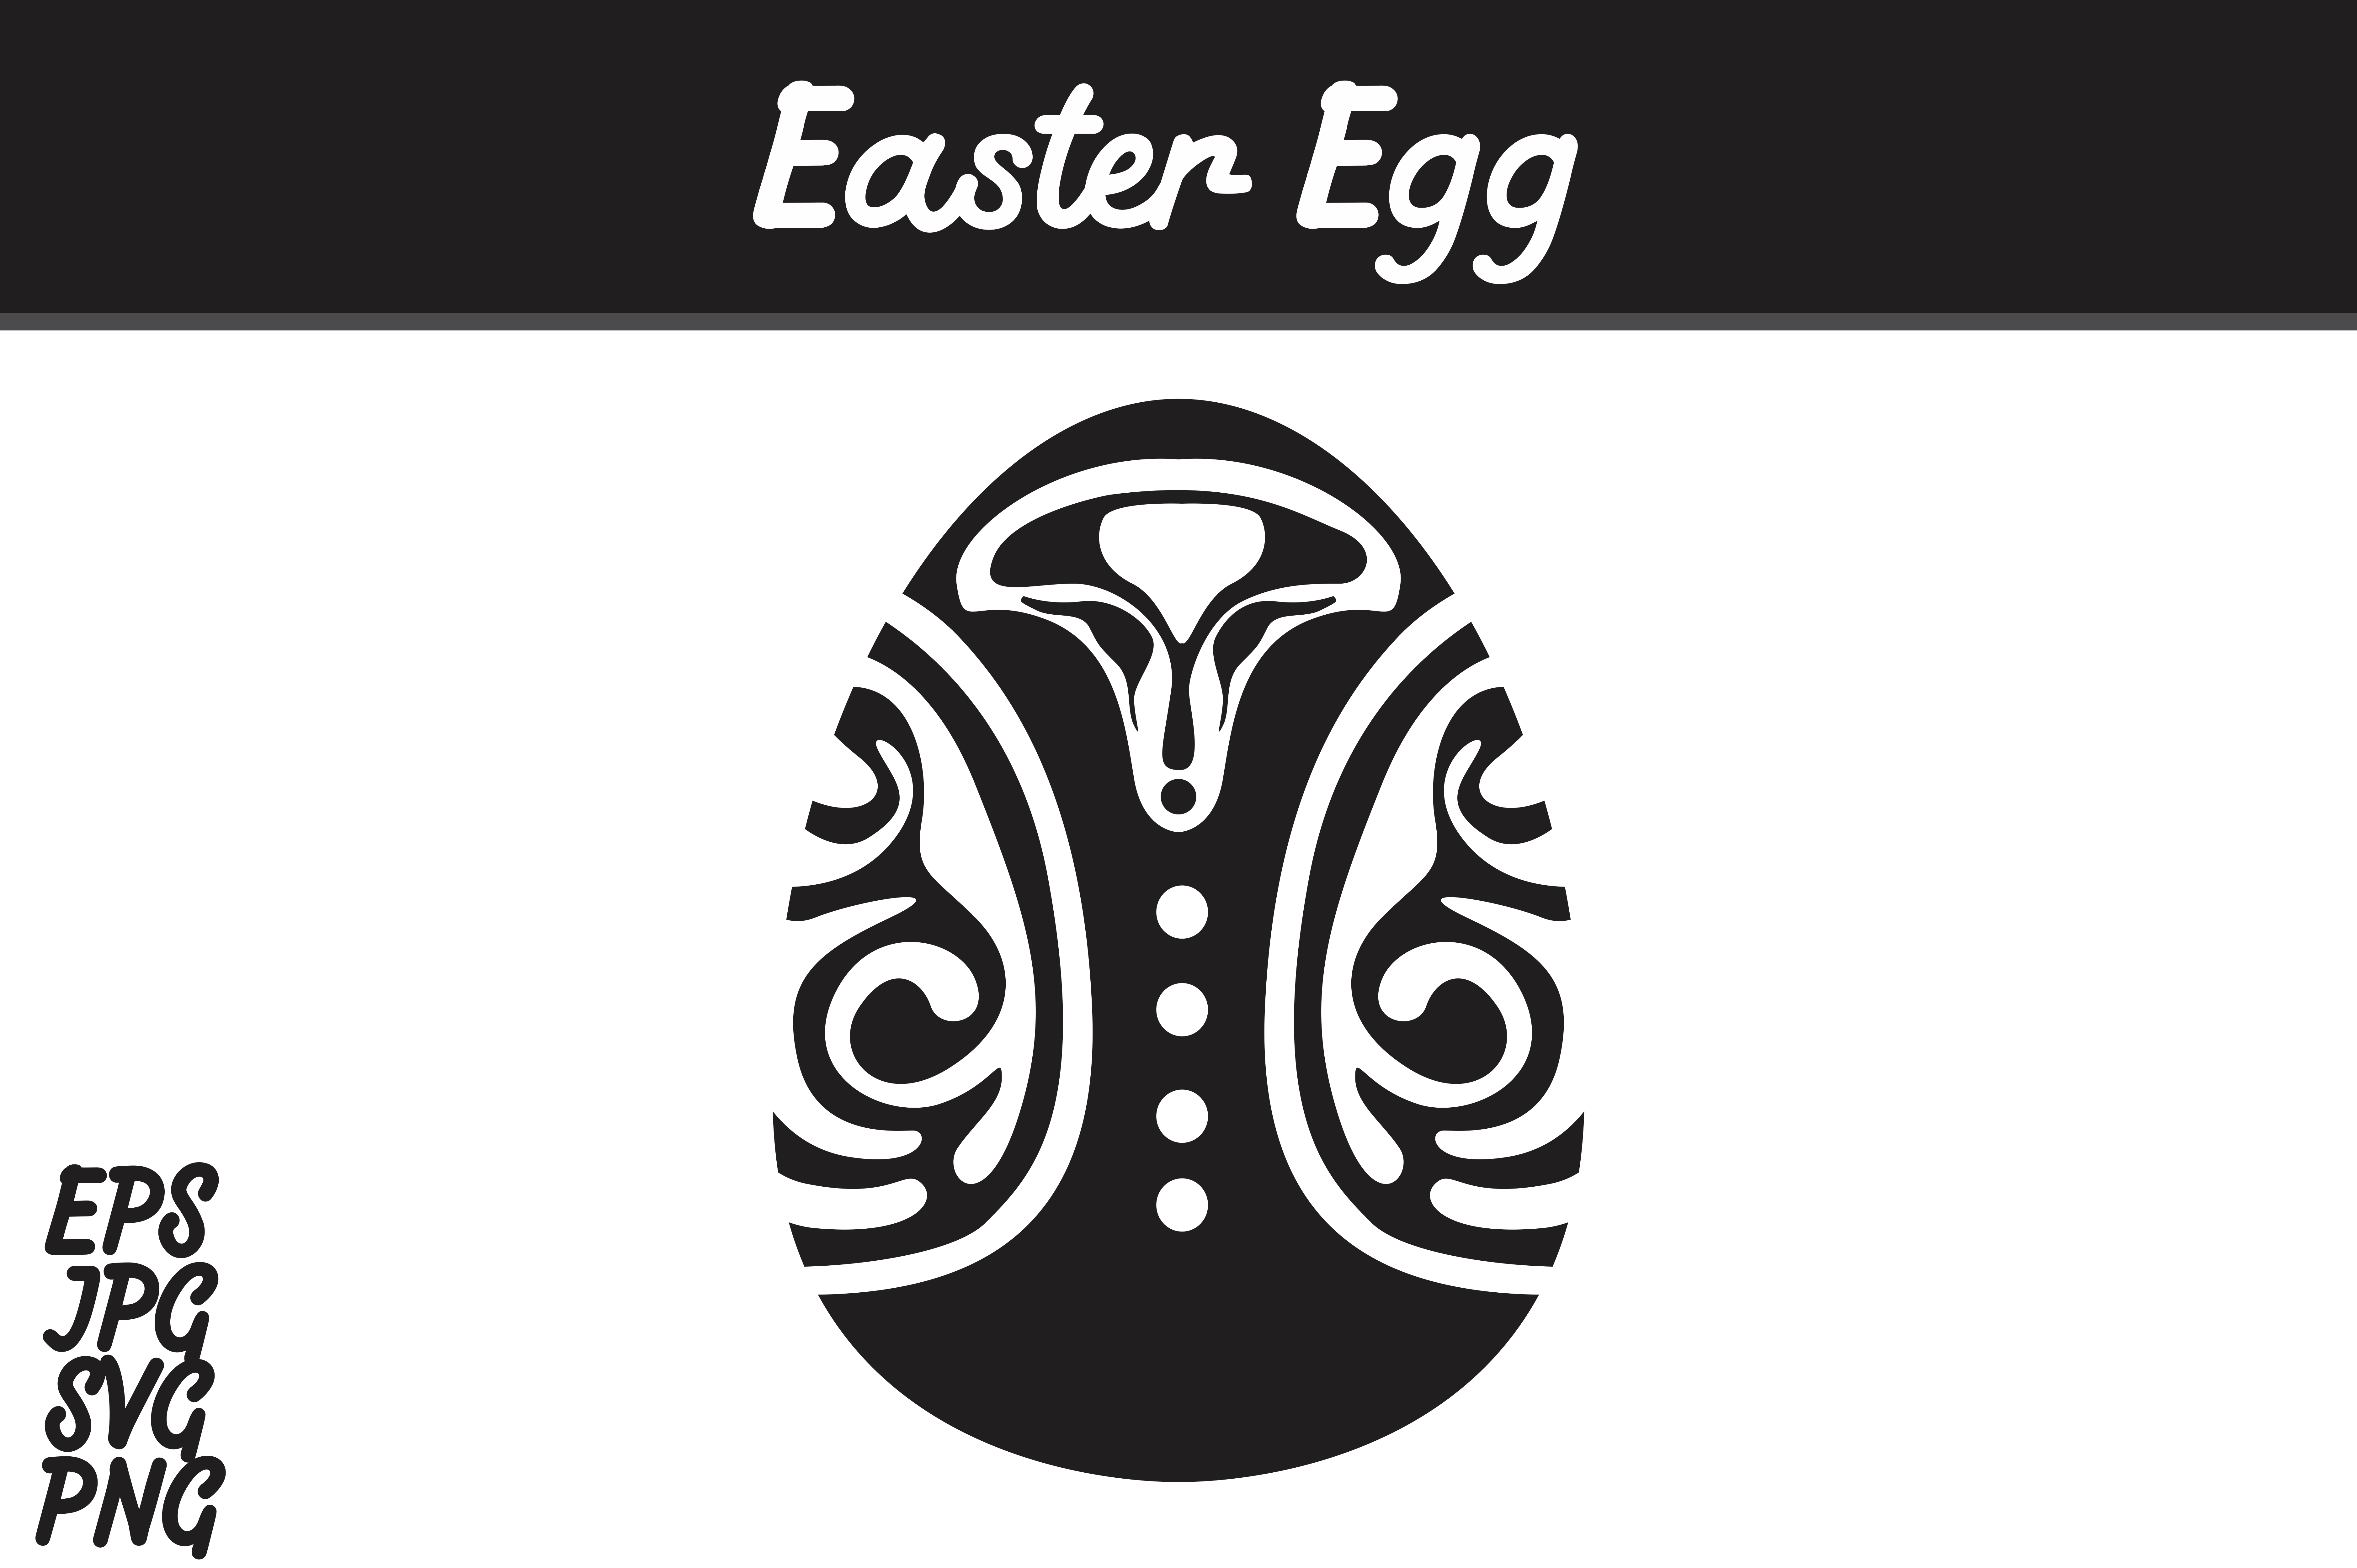 Download Free Easter Egg Svg Vector Image Graphic By Arief Sapta Adjie SVG Cut Files